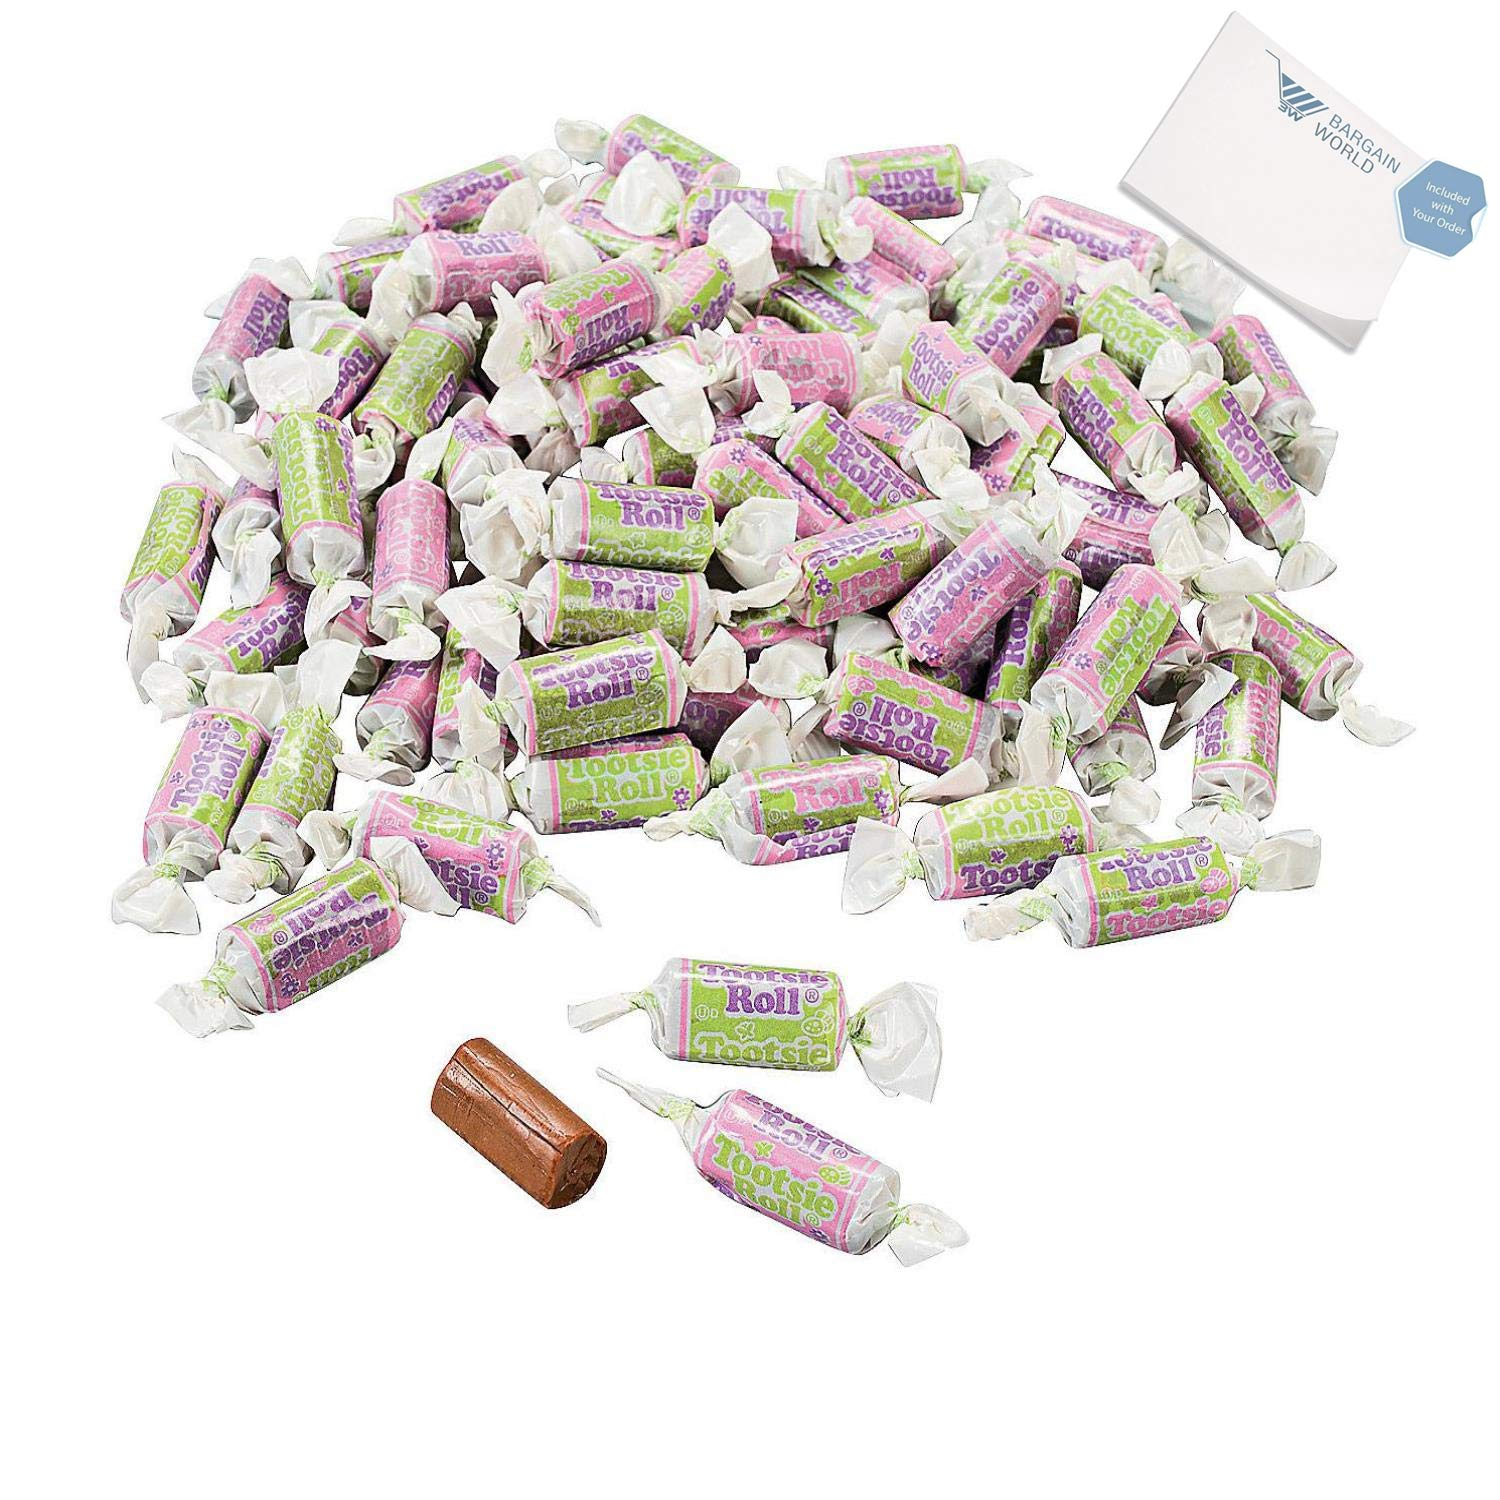 Bargain World Easter Tootsie Roll Midgees (With Sticky Notes)